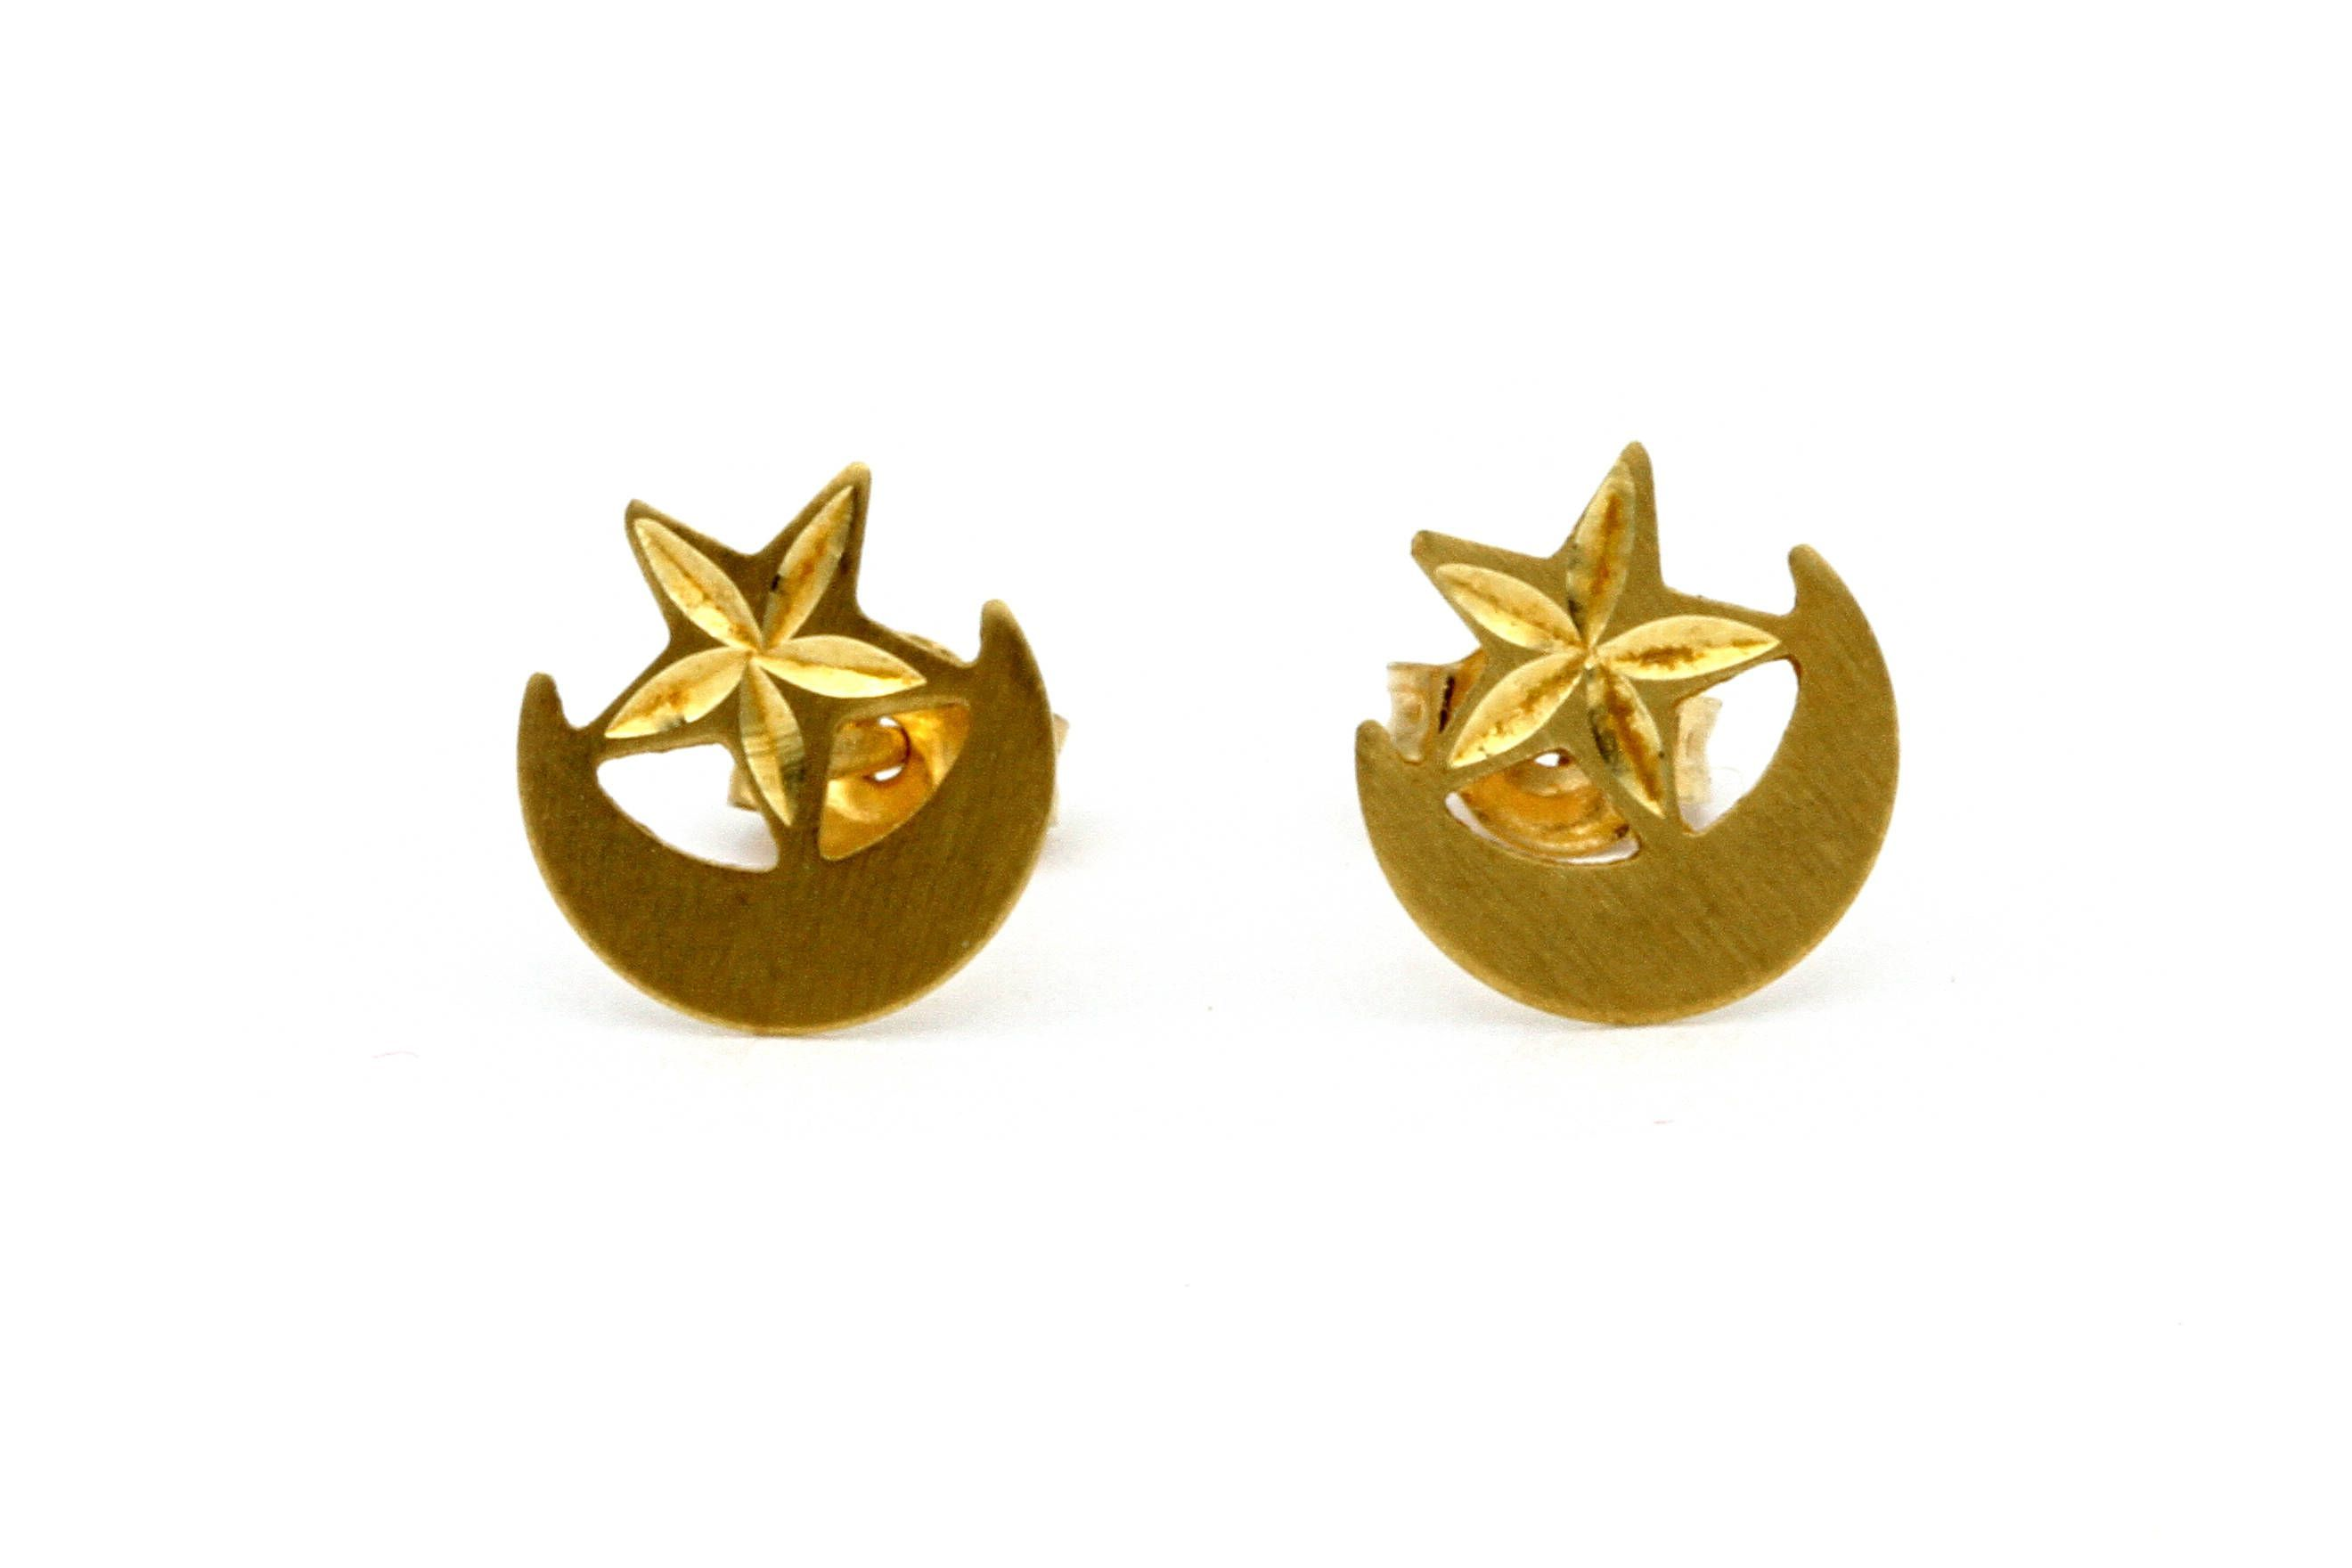 rose view baby gold ginette earrings stud lyst jewelry ny diamond fullscreen in ever